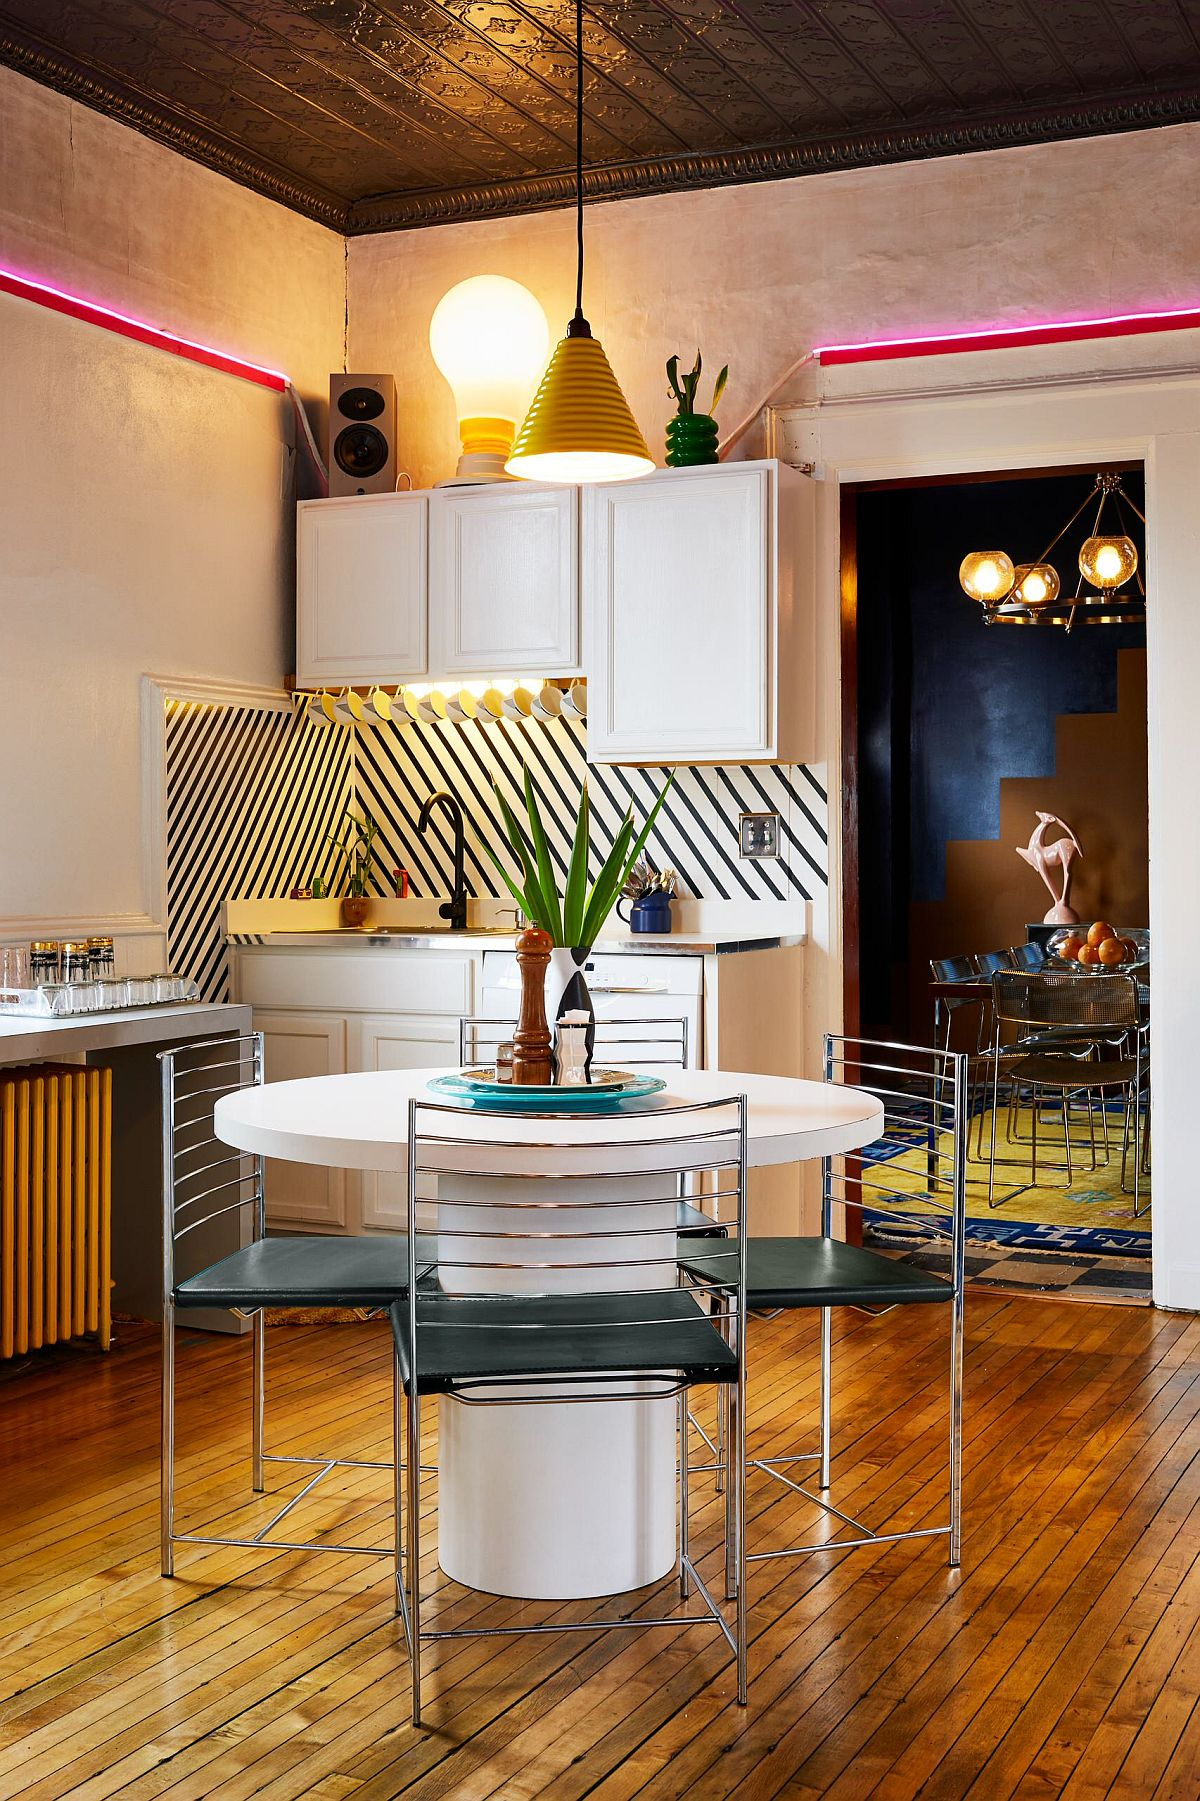 Small-eat-in-eclectic-kitchen-combines-geometric-pattern-with-a-dash-of-color-14546